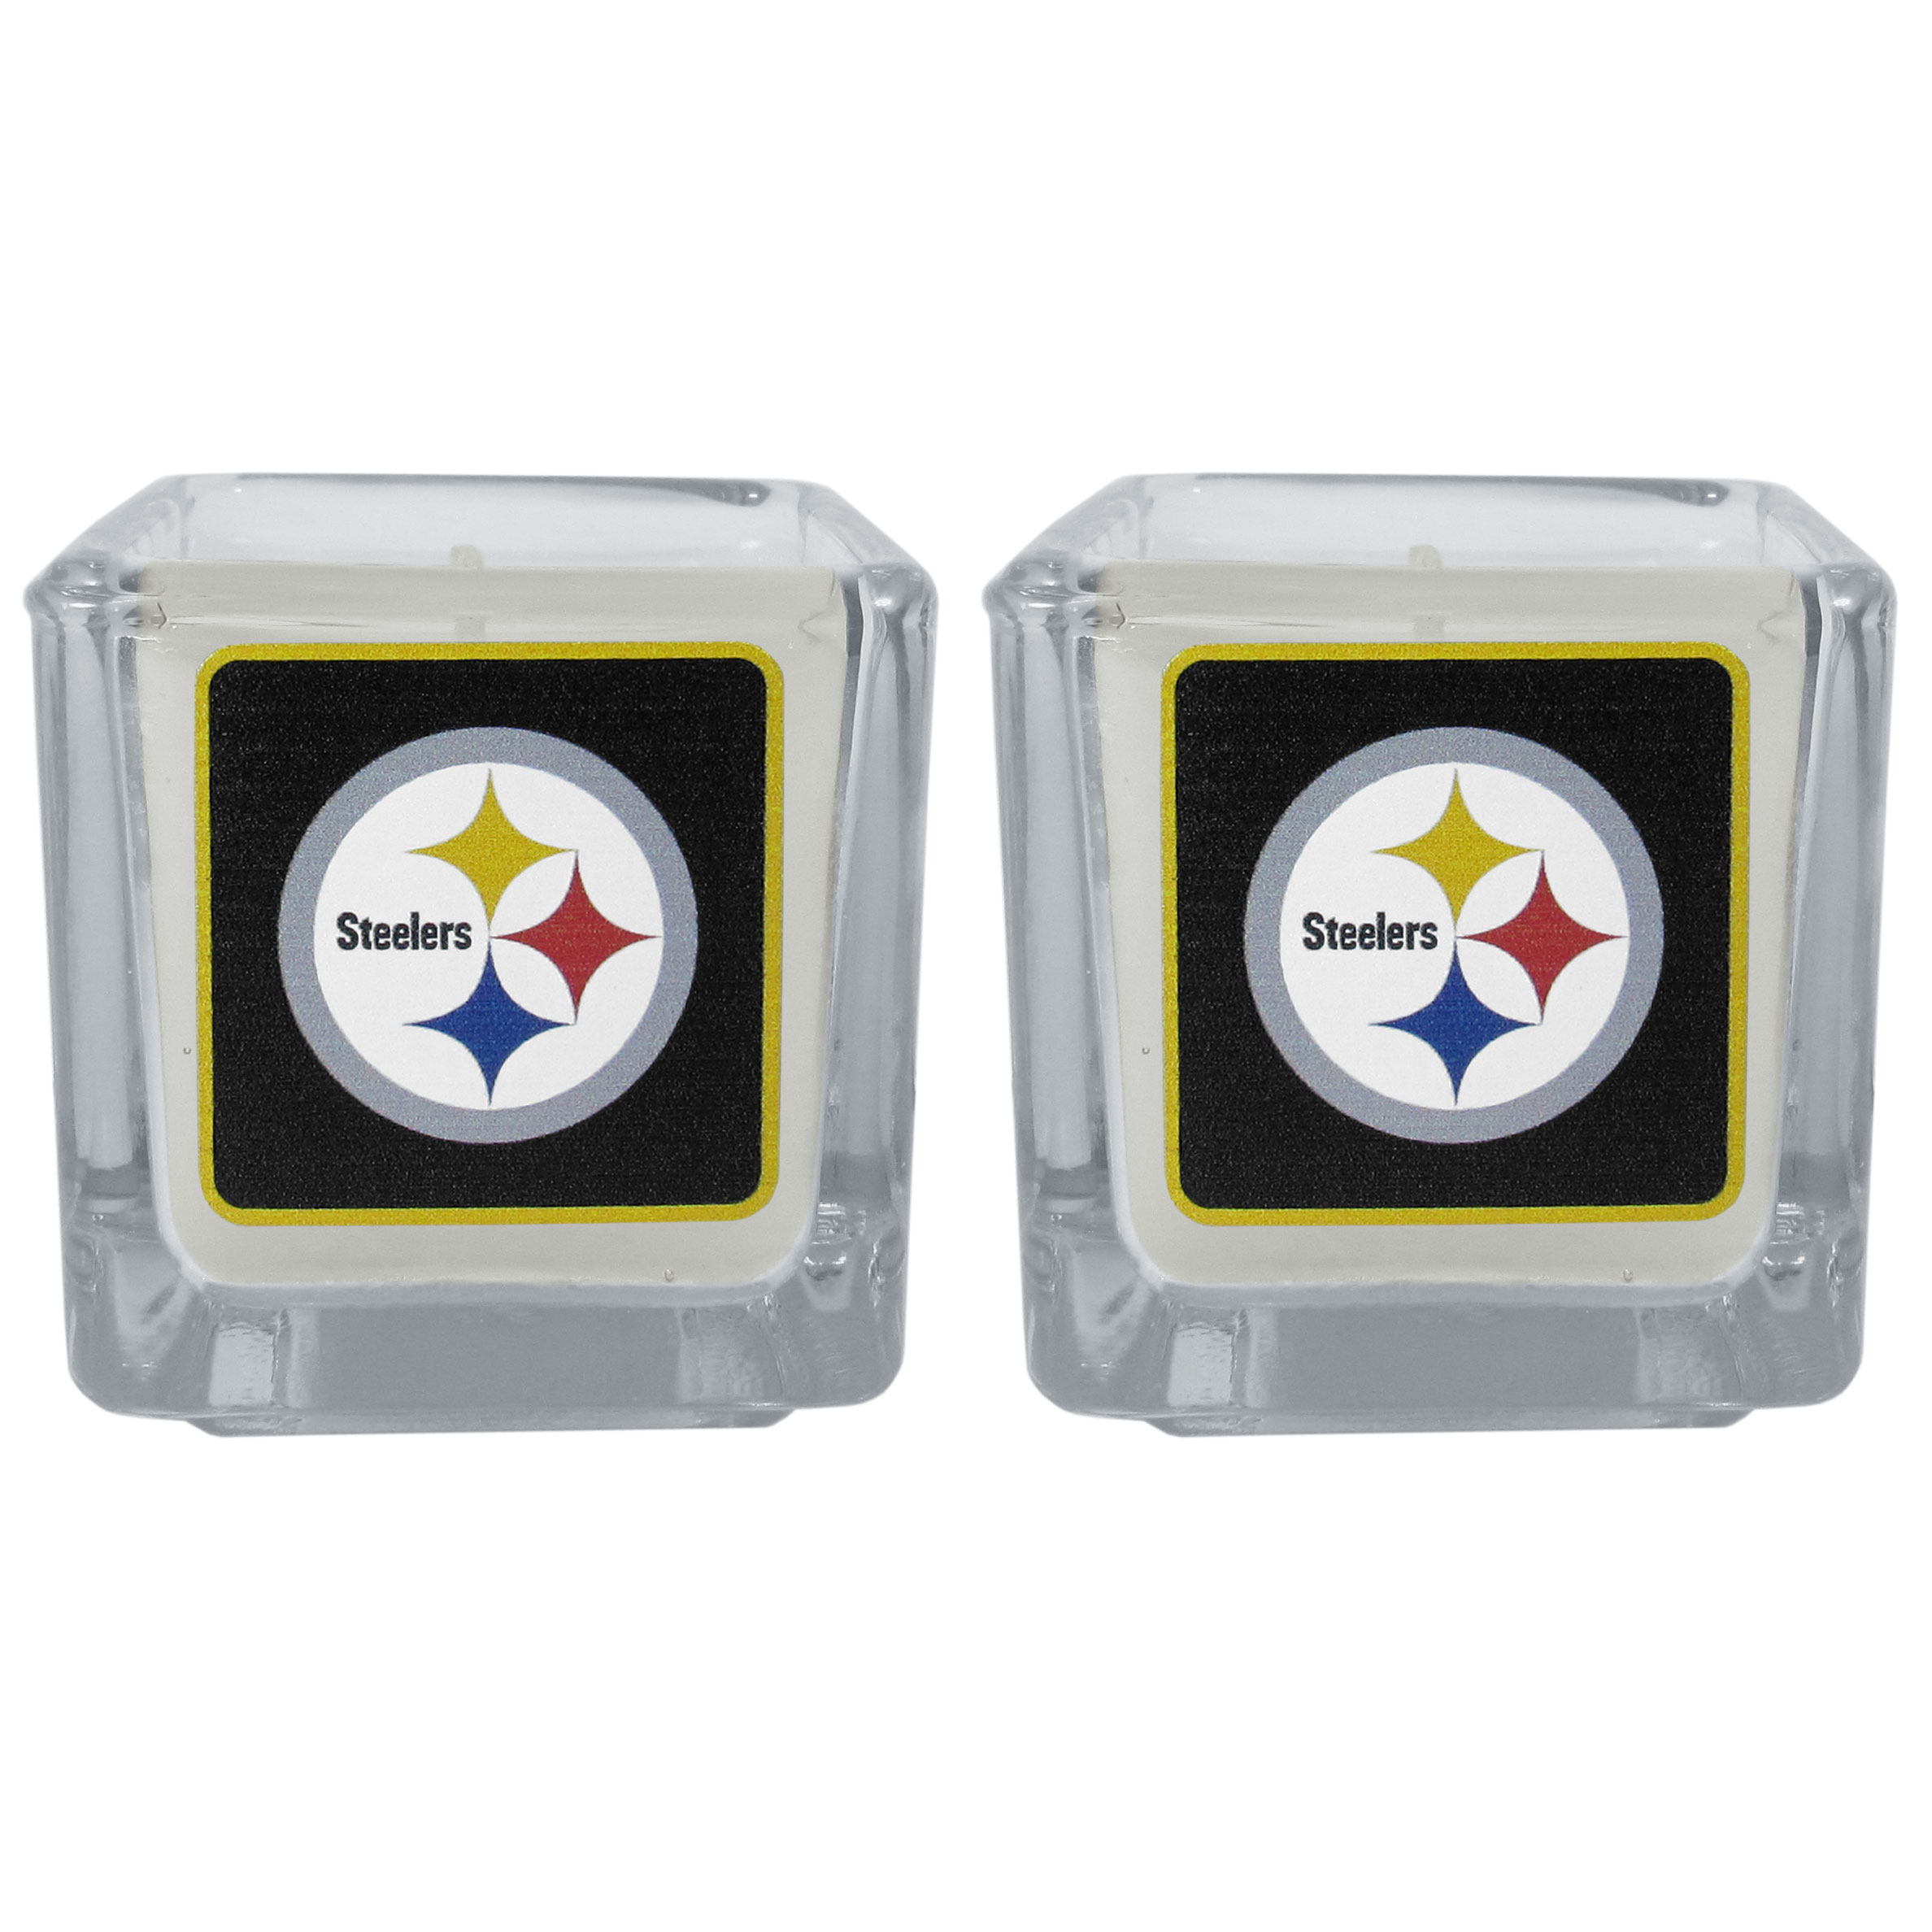 Pittsburgh Steelers Graphics Candle Set - Our candle set features 2 lightly vanilla scented candles with the Pittsburgh Steelers logo expertly printed on front. The candles are 2 inches tall in the votive style.